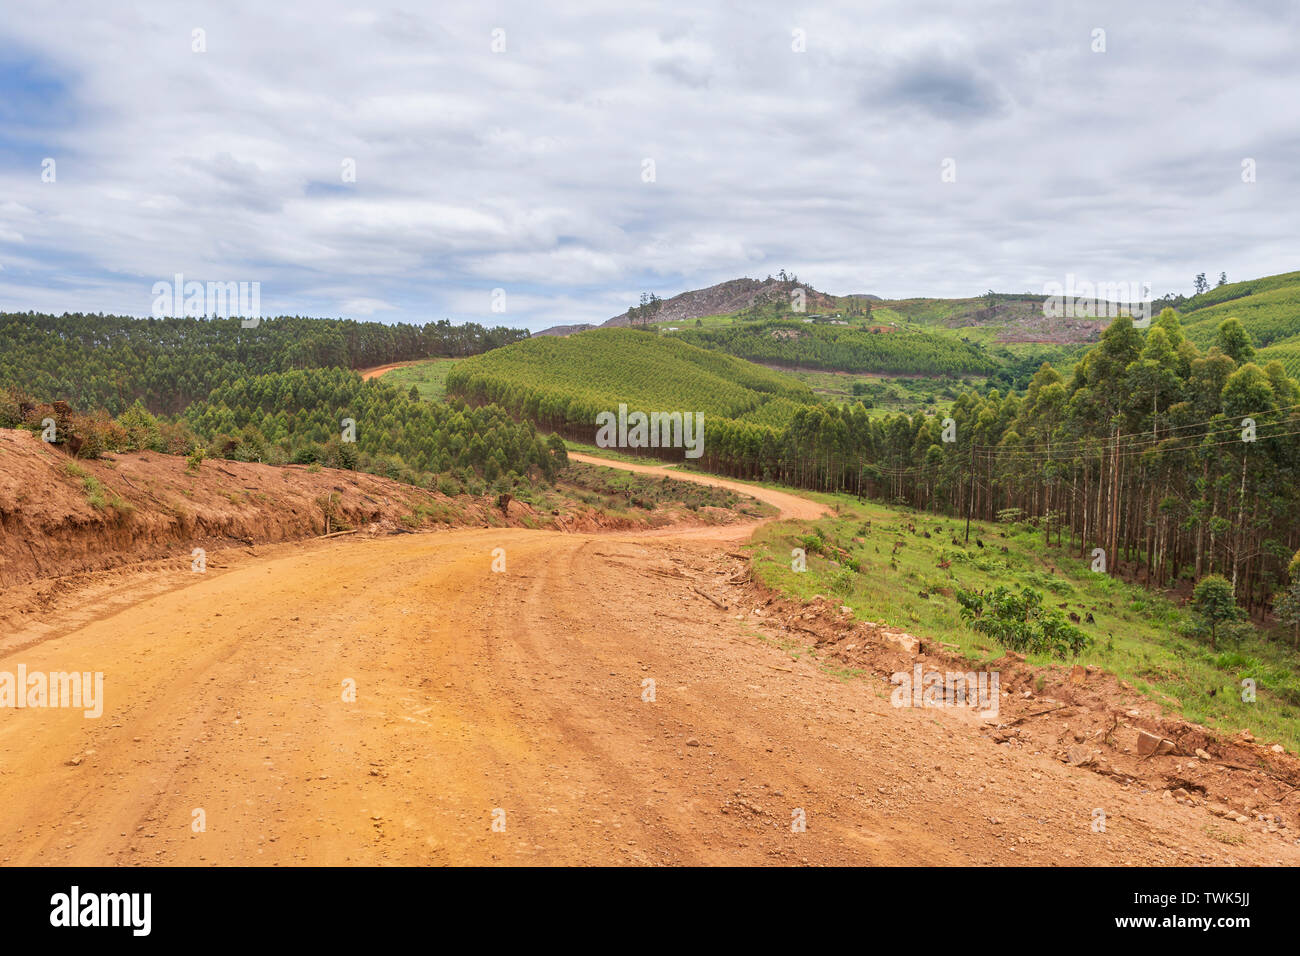 Road in Swaziland - Stock Image